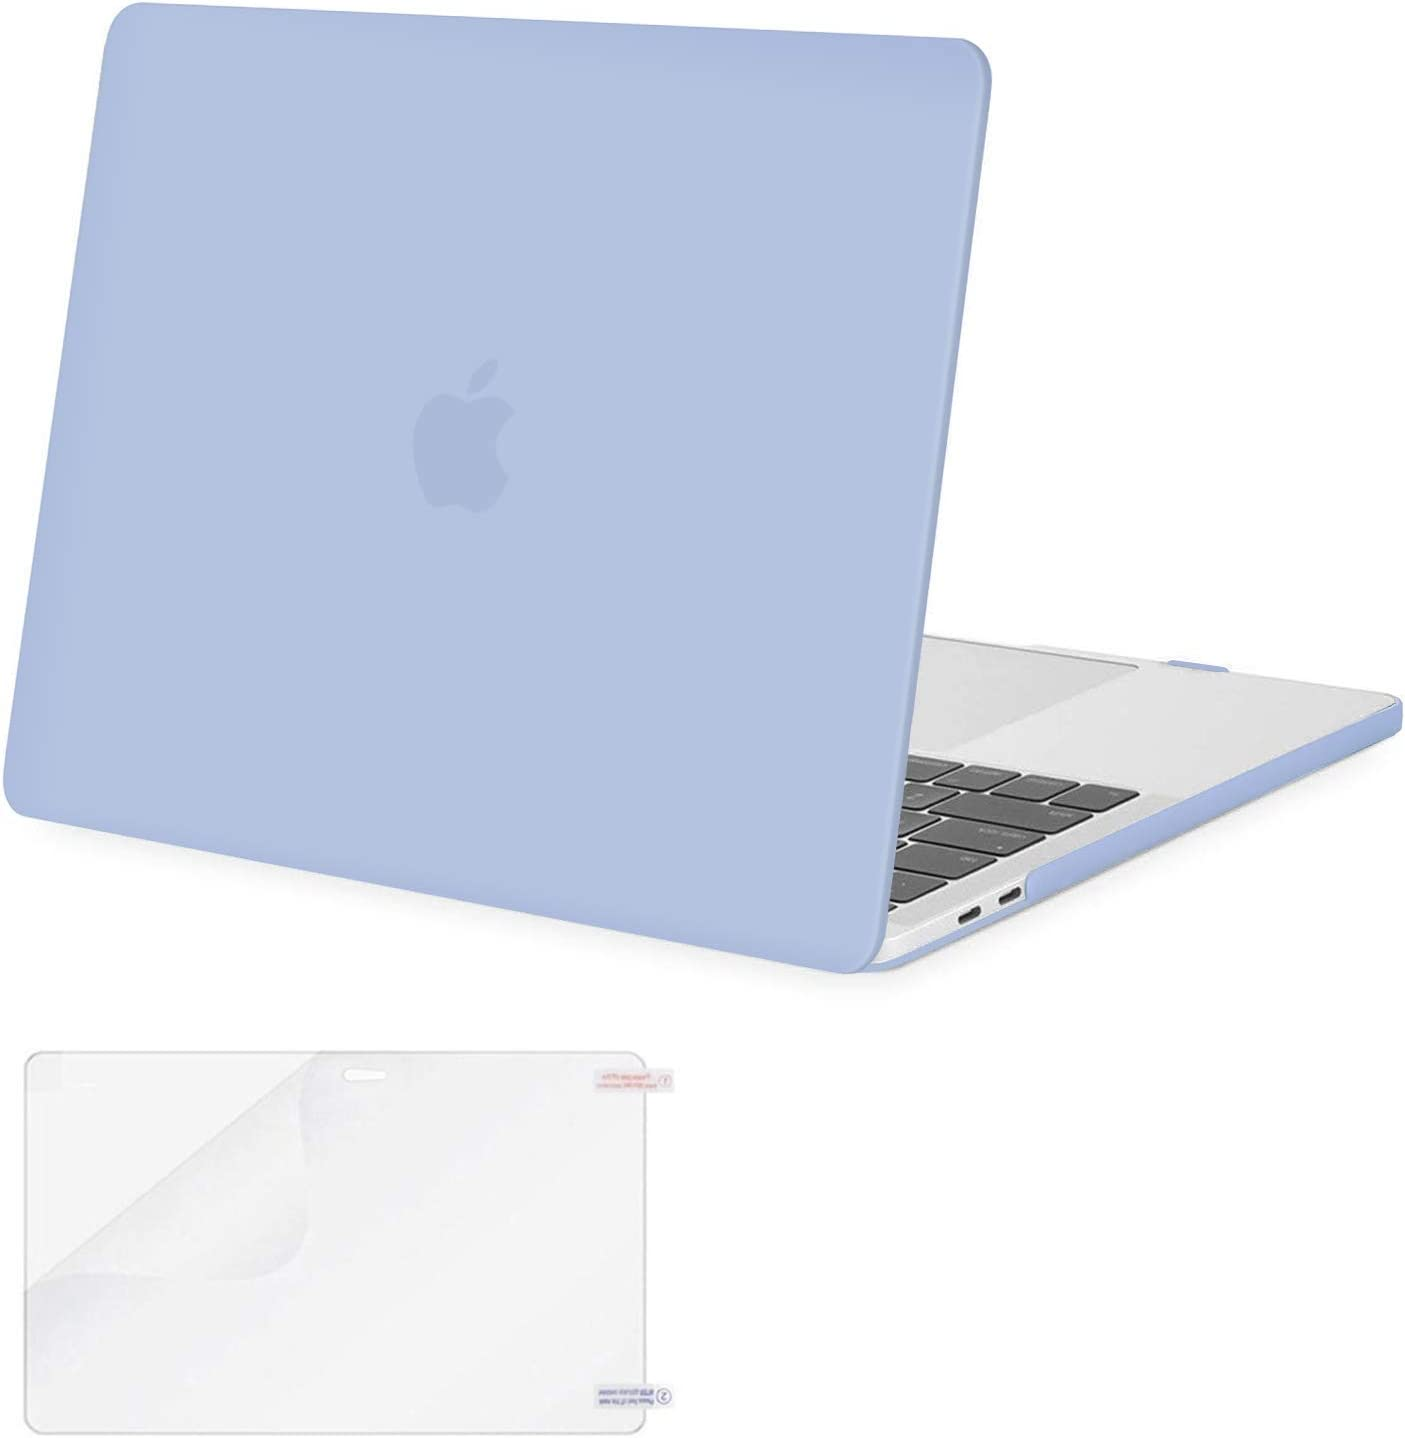 MOSISO MacBook Pro 13 inch Case 2019 2018 2017 2016 Release A2159 A1989 A1706 A1708, Plastic Hard Shell Case&Screen Protector Compatible with MacBook Pro 13 inch with/Without Touch Bar, Serenity Blue